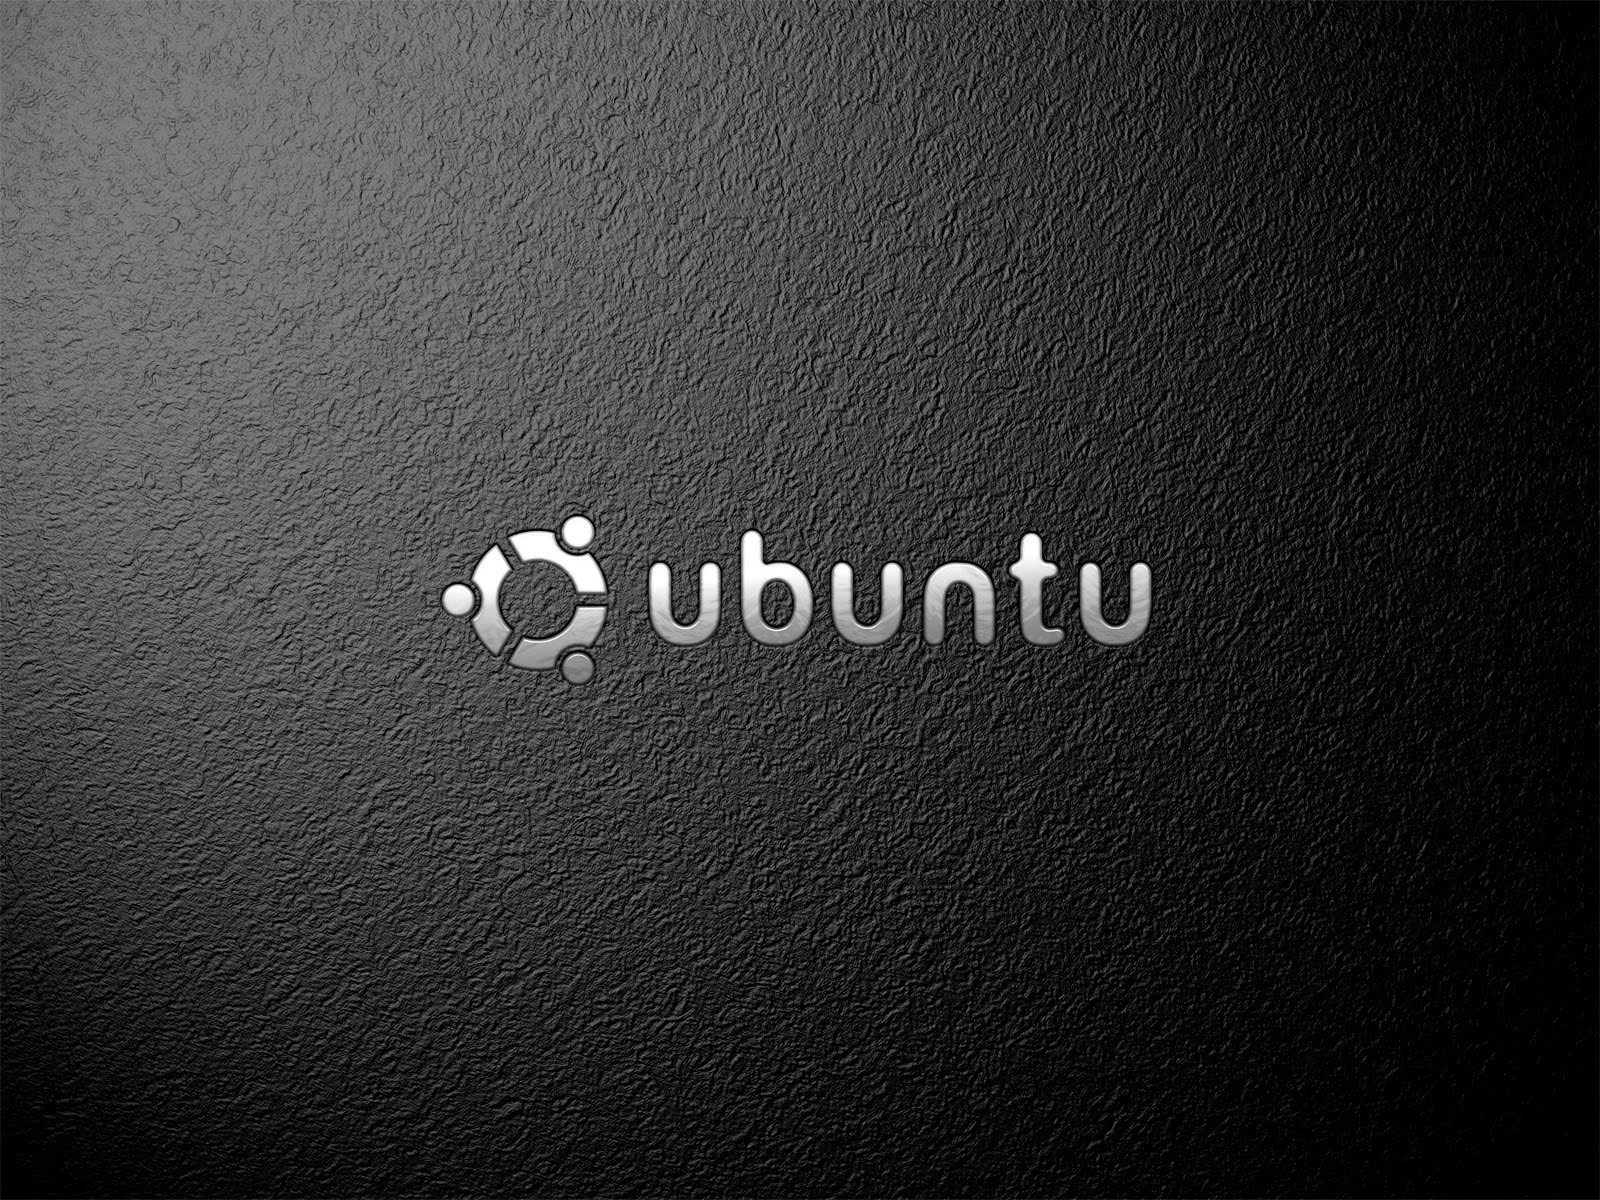 Free Download Ubuntu Wallpapers Hd 113135 1600x1200 For Your